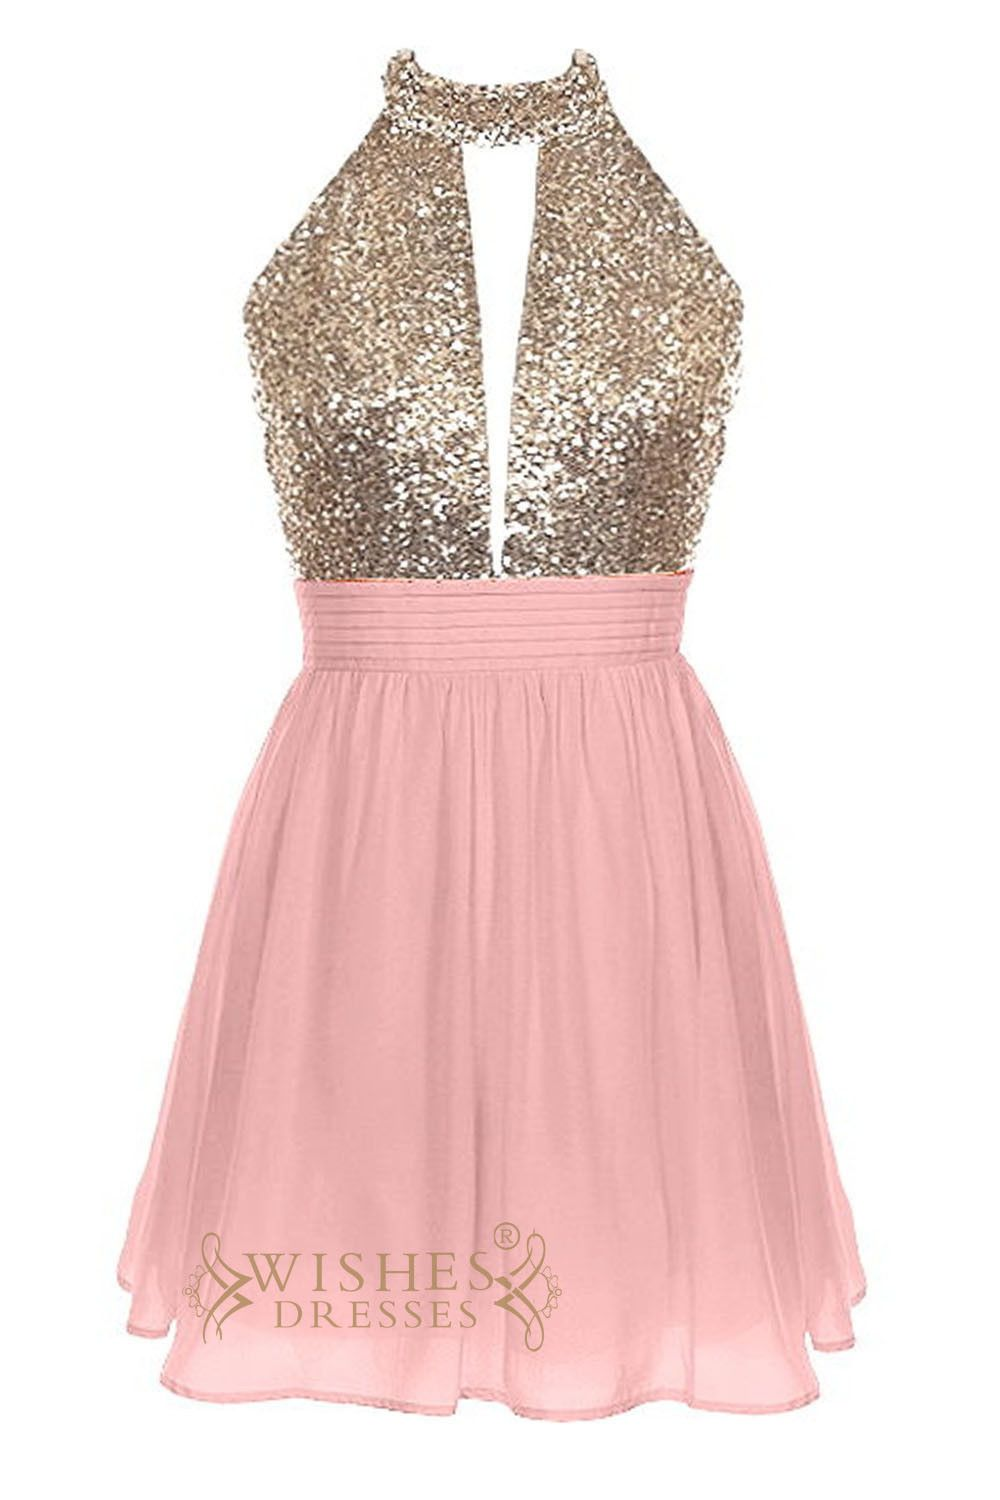 Affordable Bicolor Short Prom Dress Am421 Strapless Homecoming